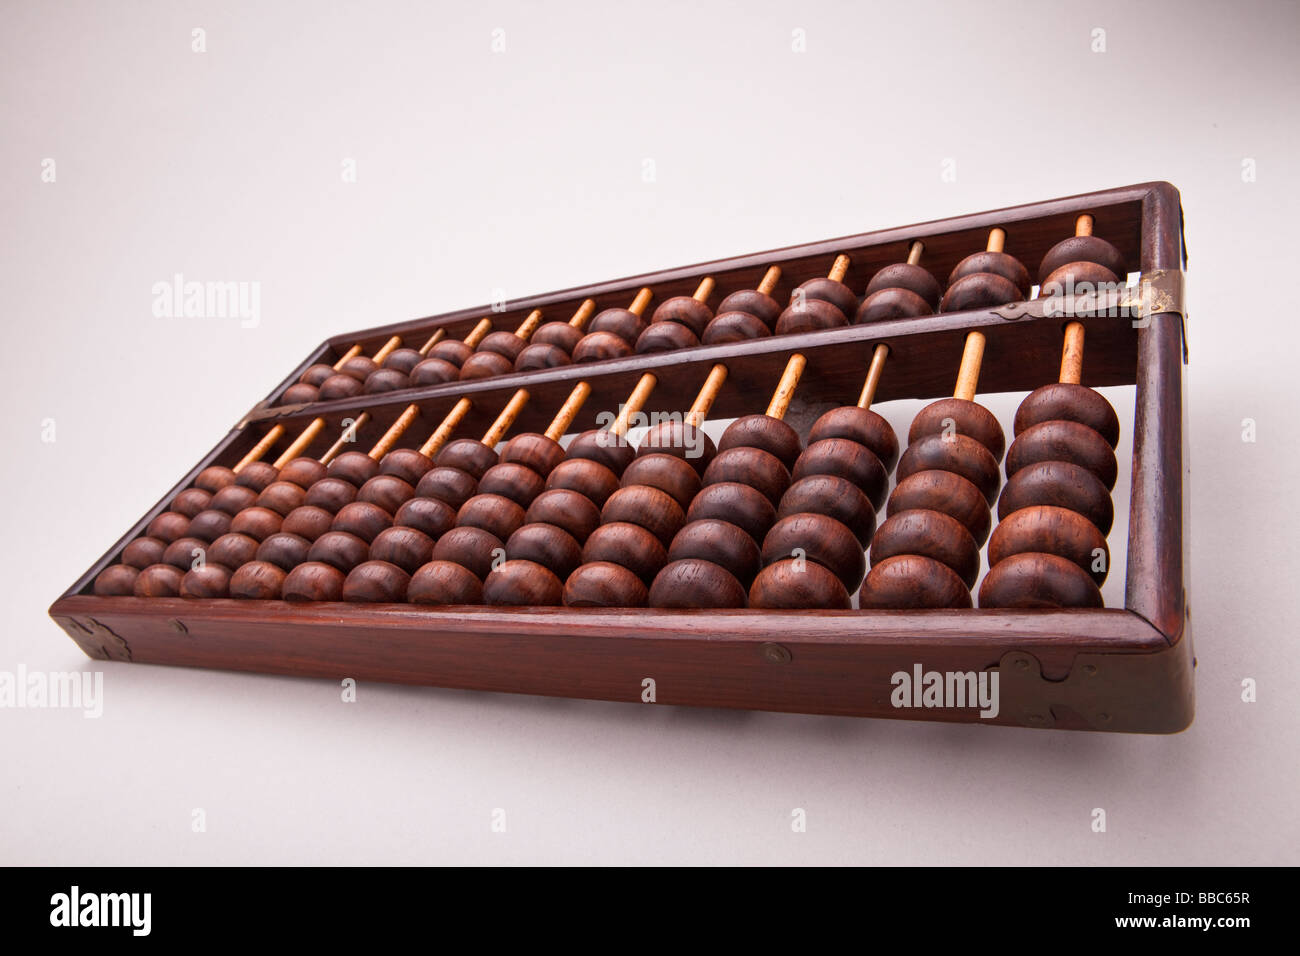 Large Chinese abacus on white background with studio lighting. - Stock Image